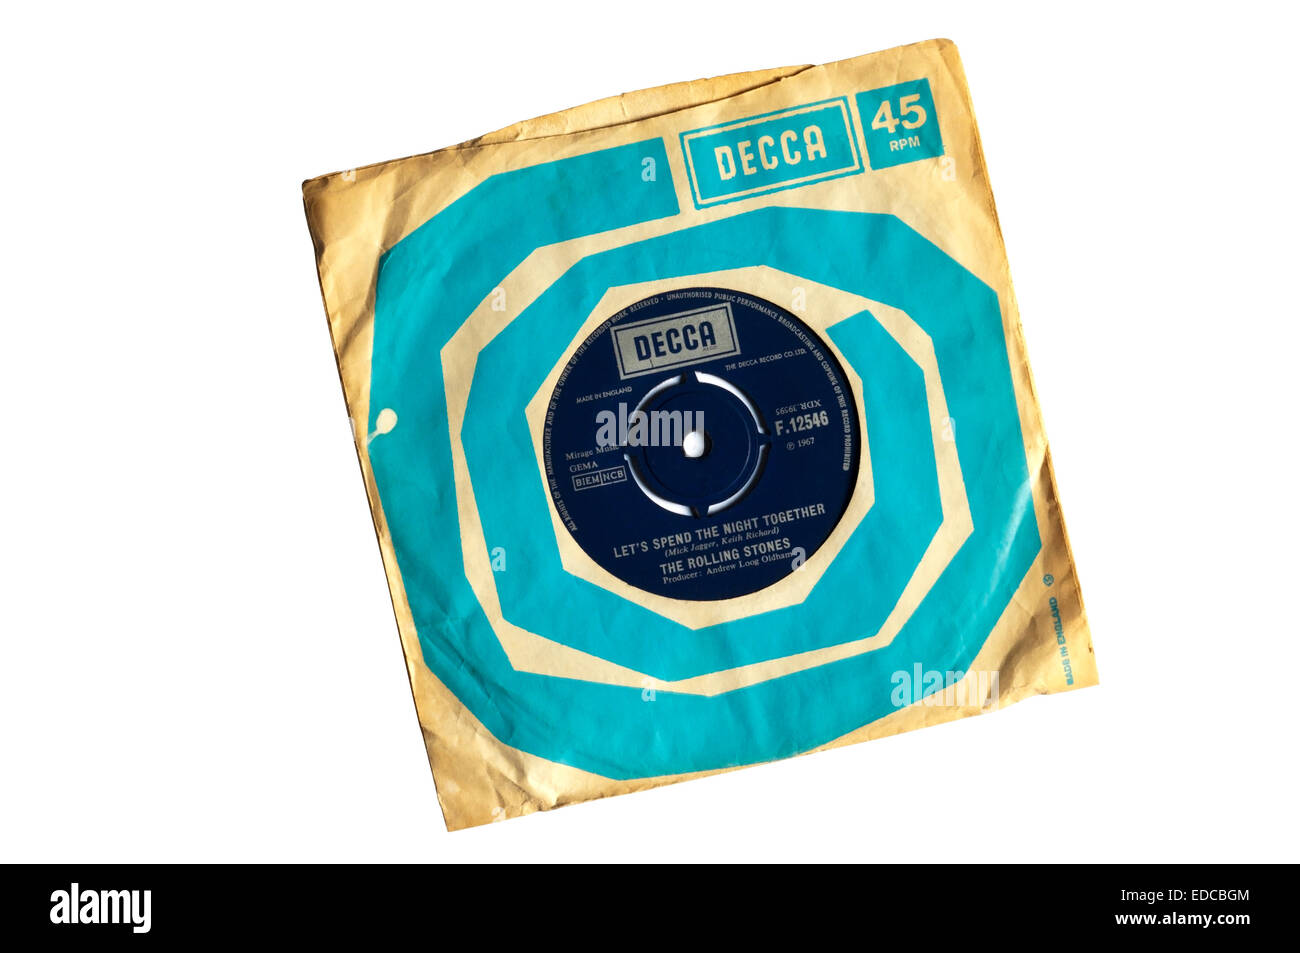 Double A-side single of Let's Spend the Night Together and Ruby Tuesday released by The Rolling Stones in 1967. - Stock Image